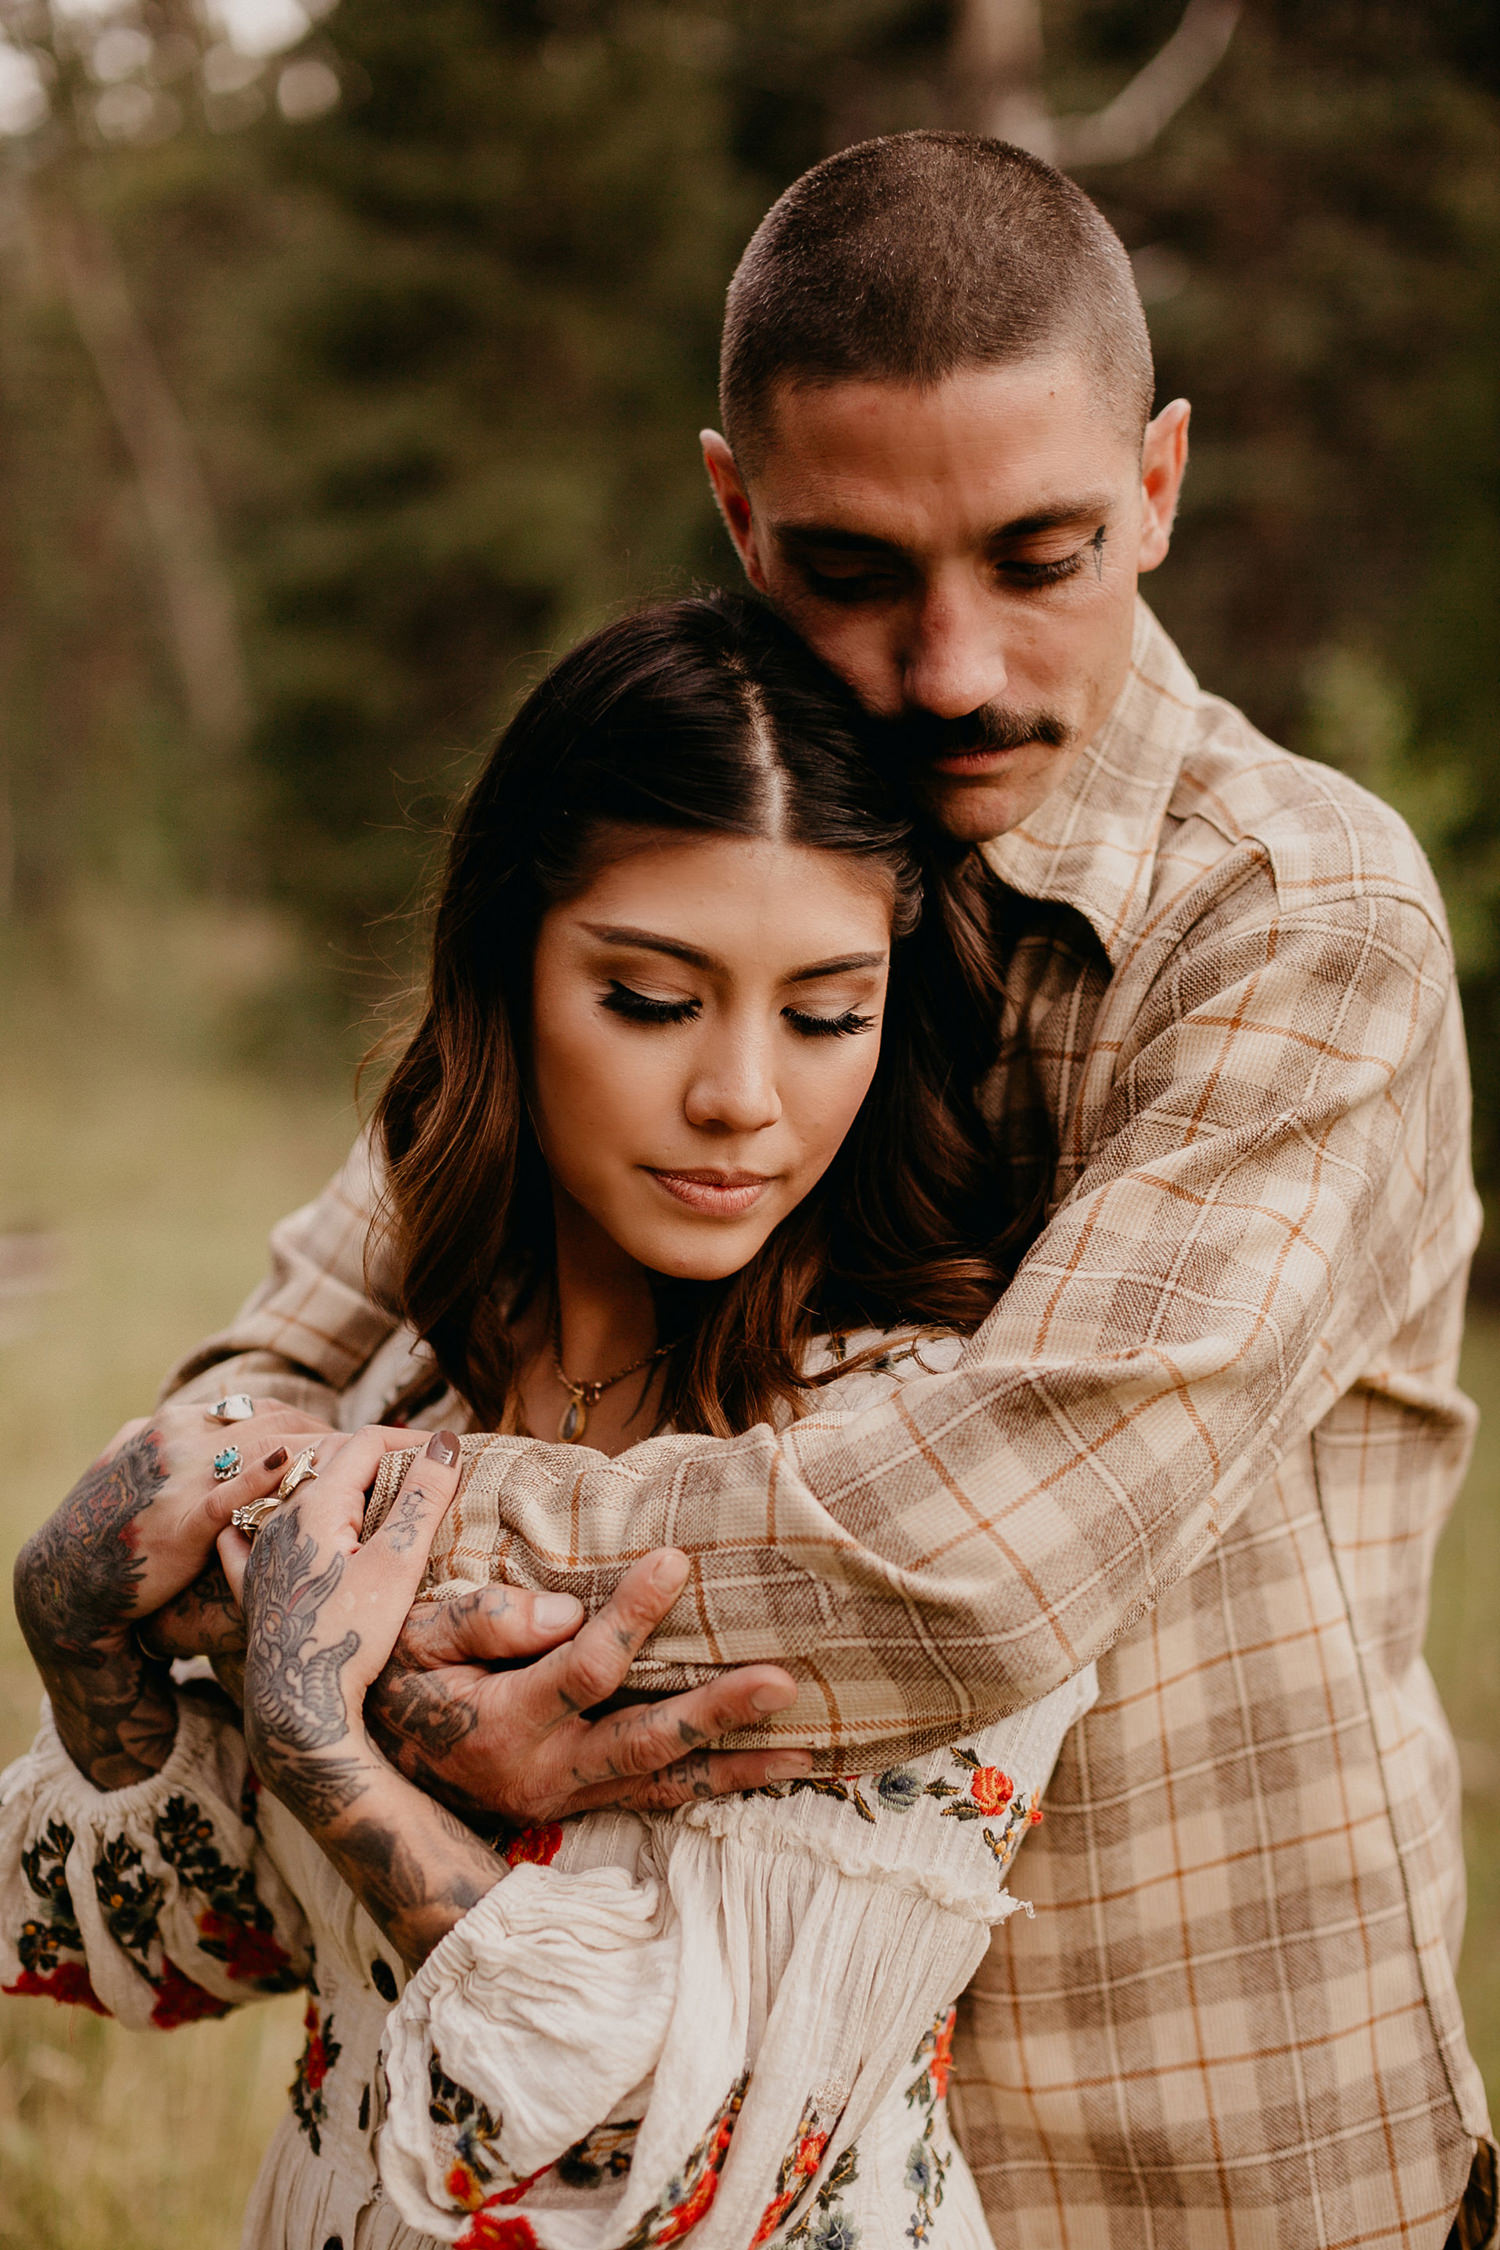 Bailey Colorado Denver Wedding Engagement Photographer Liz Osban Cheyenne Wyoming Mountain Elopement Boho bohemian vintage film tattoo non traditional tattooed rock and roll 15.jpg